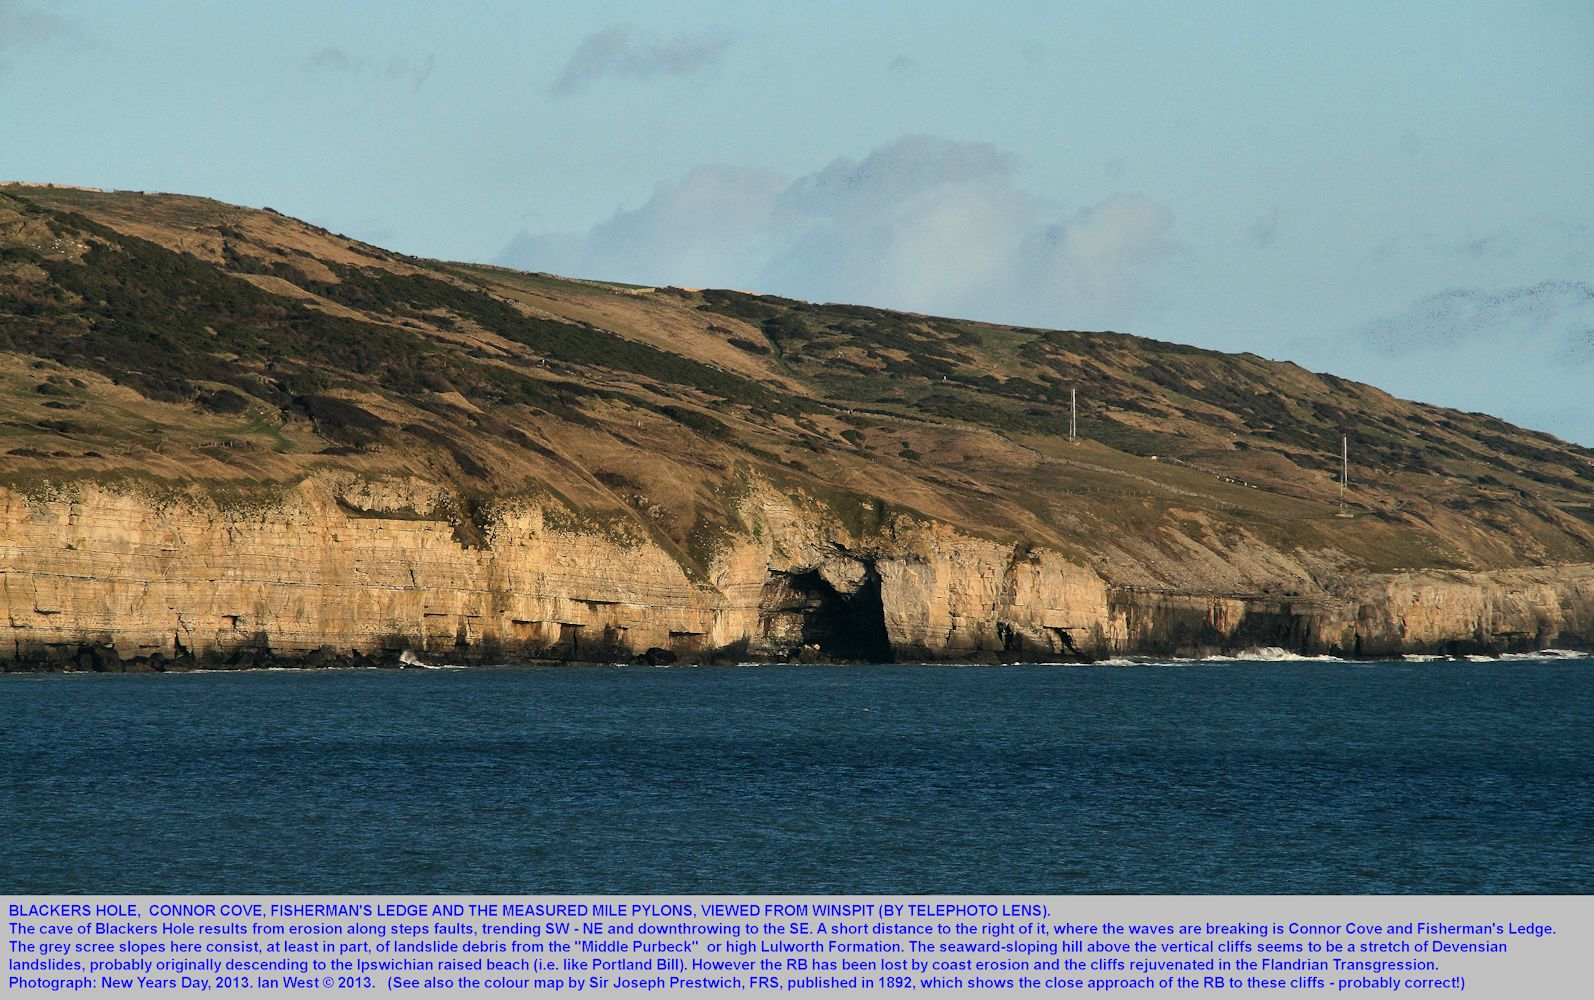 A view of the cliffs east of Dancing Ledge, near Swanage, Isle of Purbeck, Dorset, showing Blackers Hole, Connor Cove and Fisherman's Ledge, telephoto, 1st January 2013